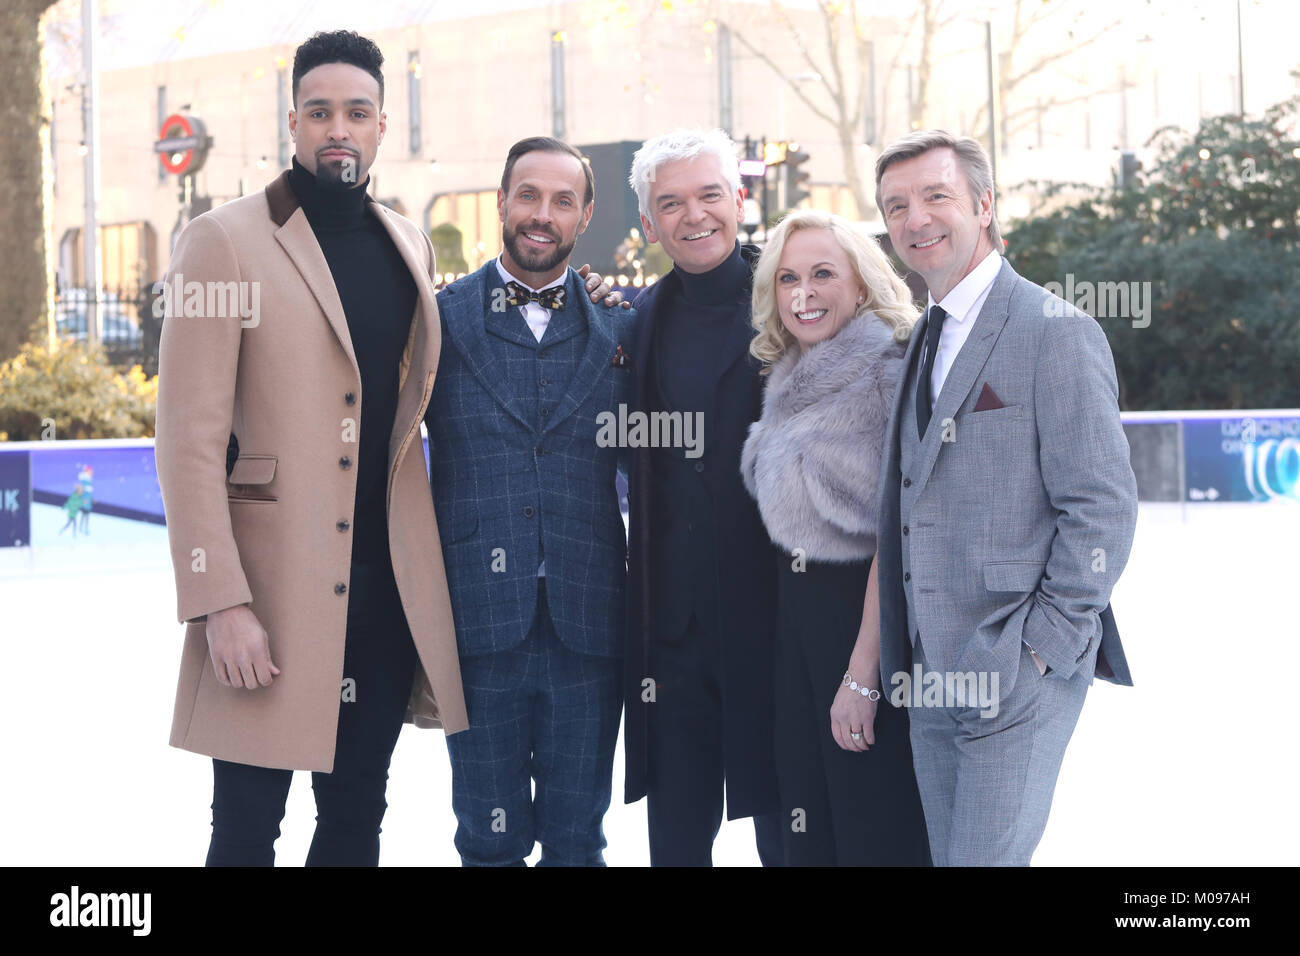 Dancing On Ice Photocall Held At The Natural History Museum Stock Photo Alamy